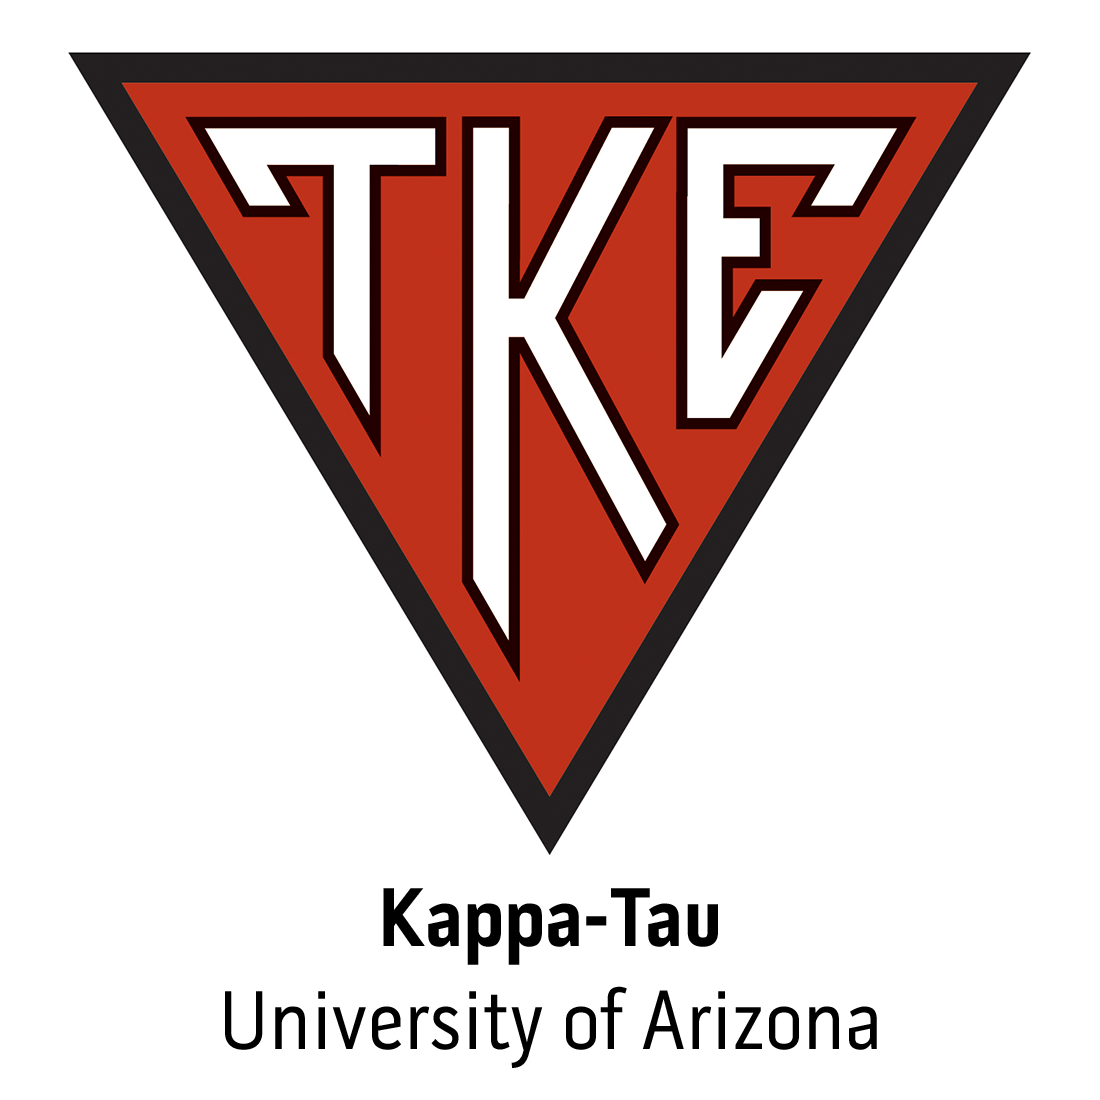 Kappa-Tau Chapter at University of Arizona